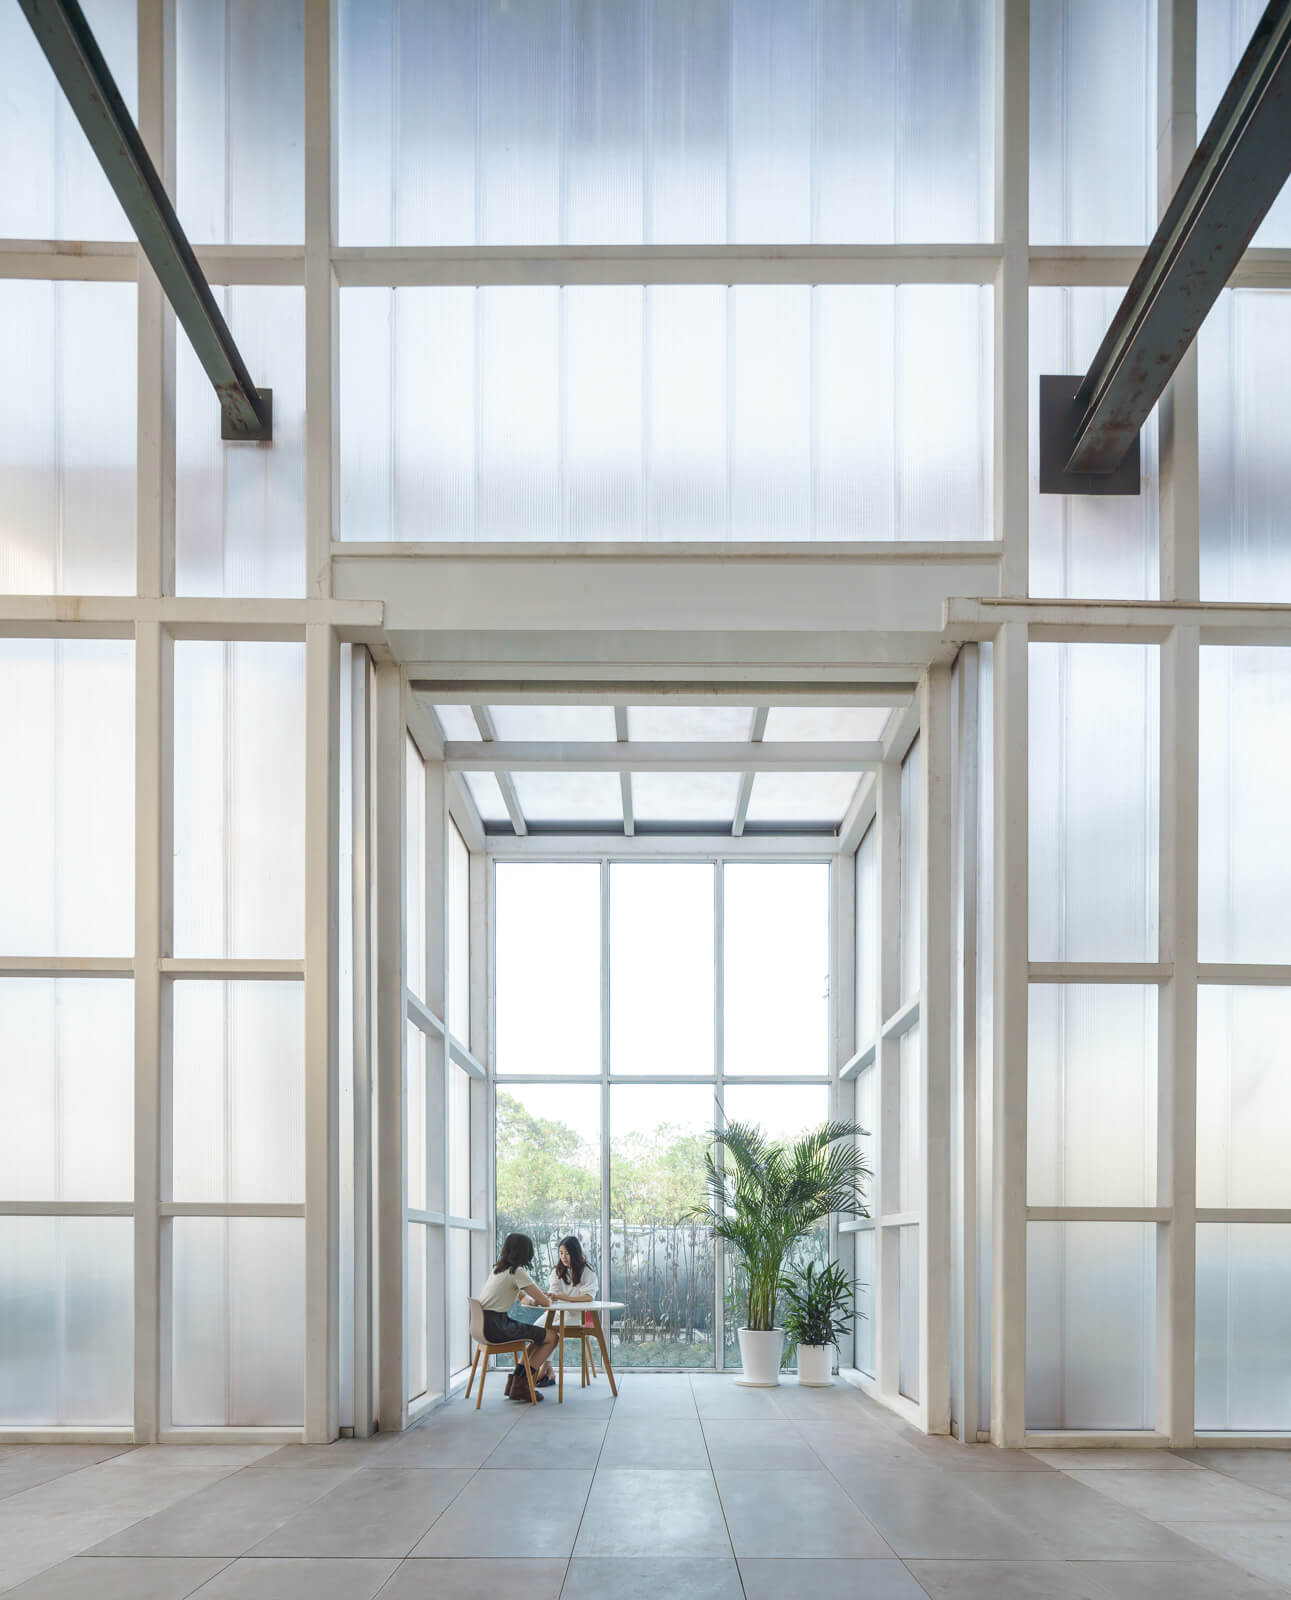 Layers of transparency within the space | Kokaistudios | Shanghai | STIRworld